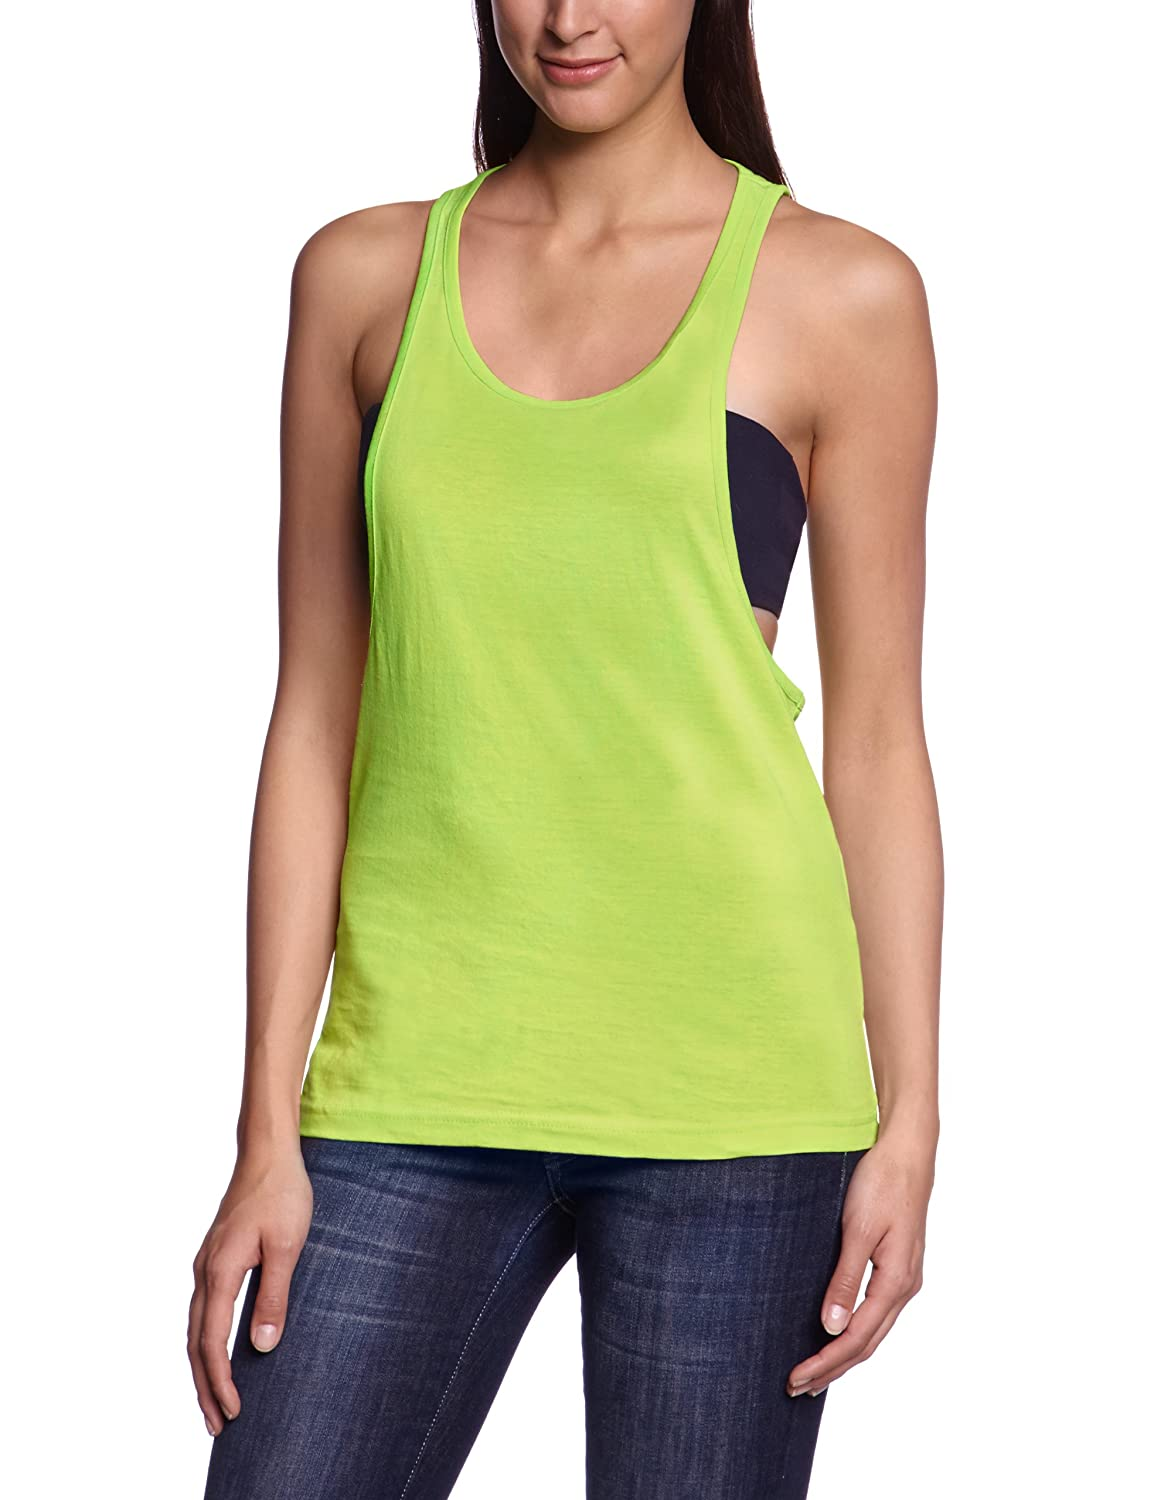 Womens Ladies Neon Tanktop Tank Top Urban Classic Purchase Cheap Price Free Shipping Order Affordable Sale Online With Paypal Sale Online Cheap Sale Websites cph1HkNrd